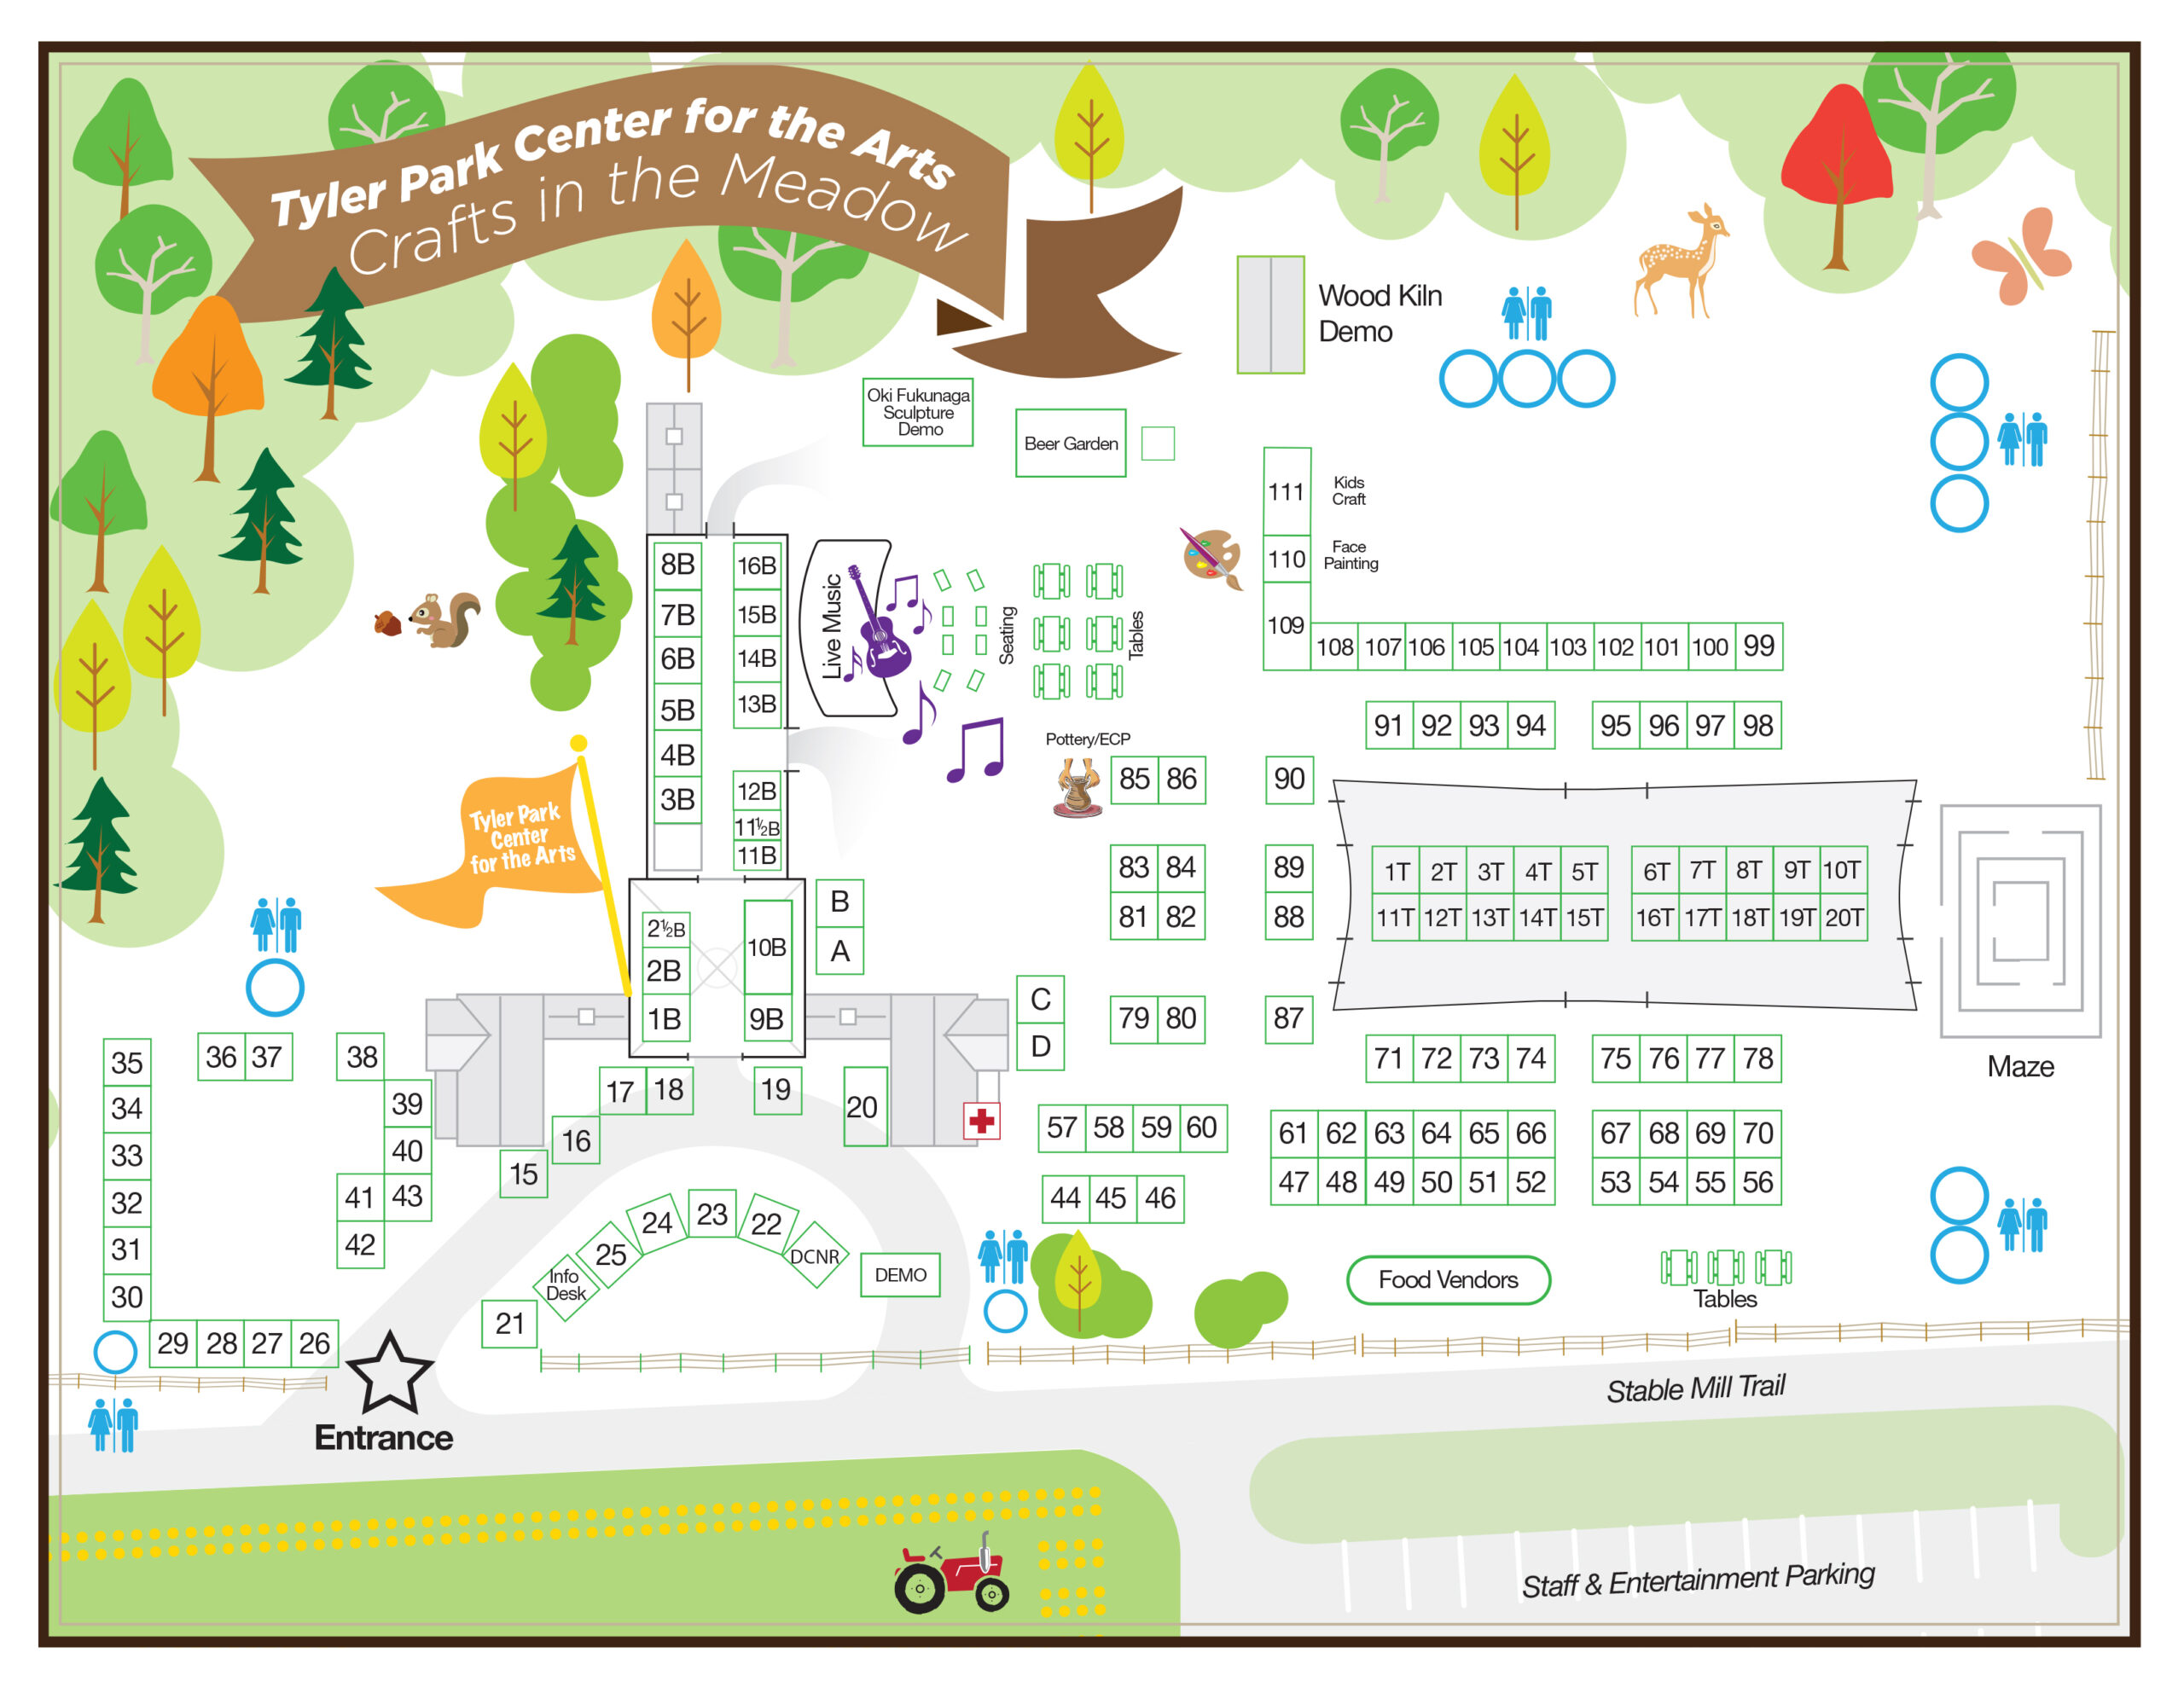 Program for Crafts in the Meadow